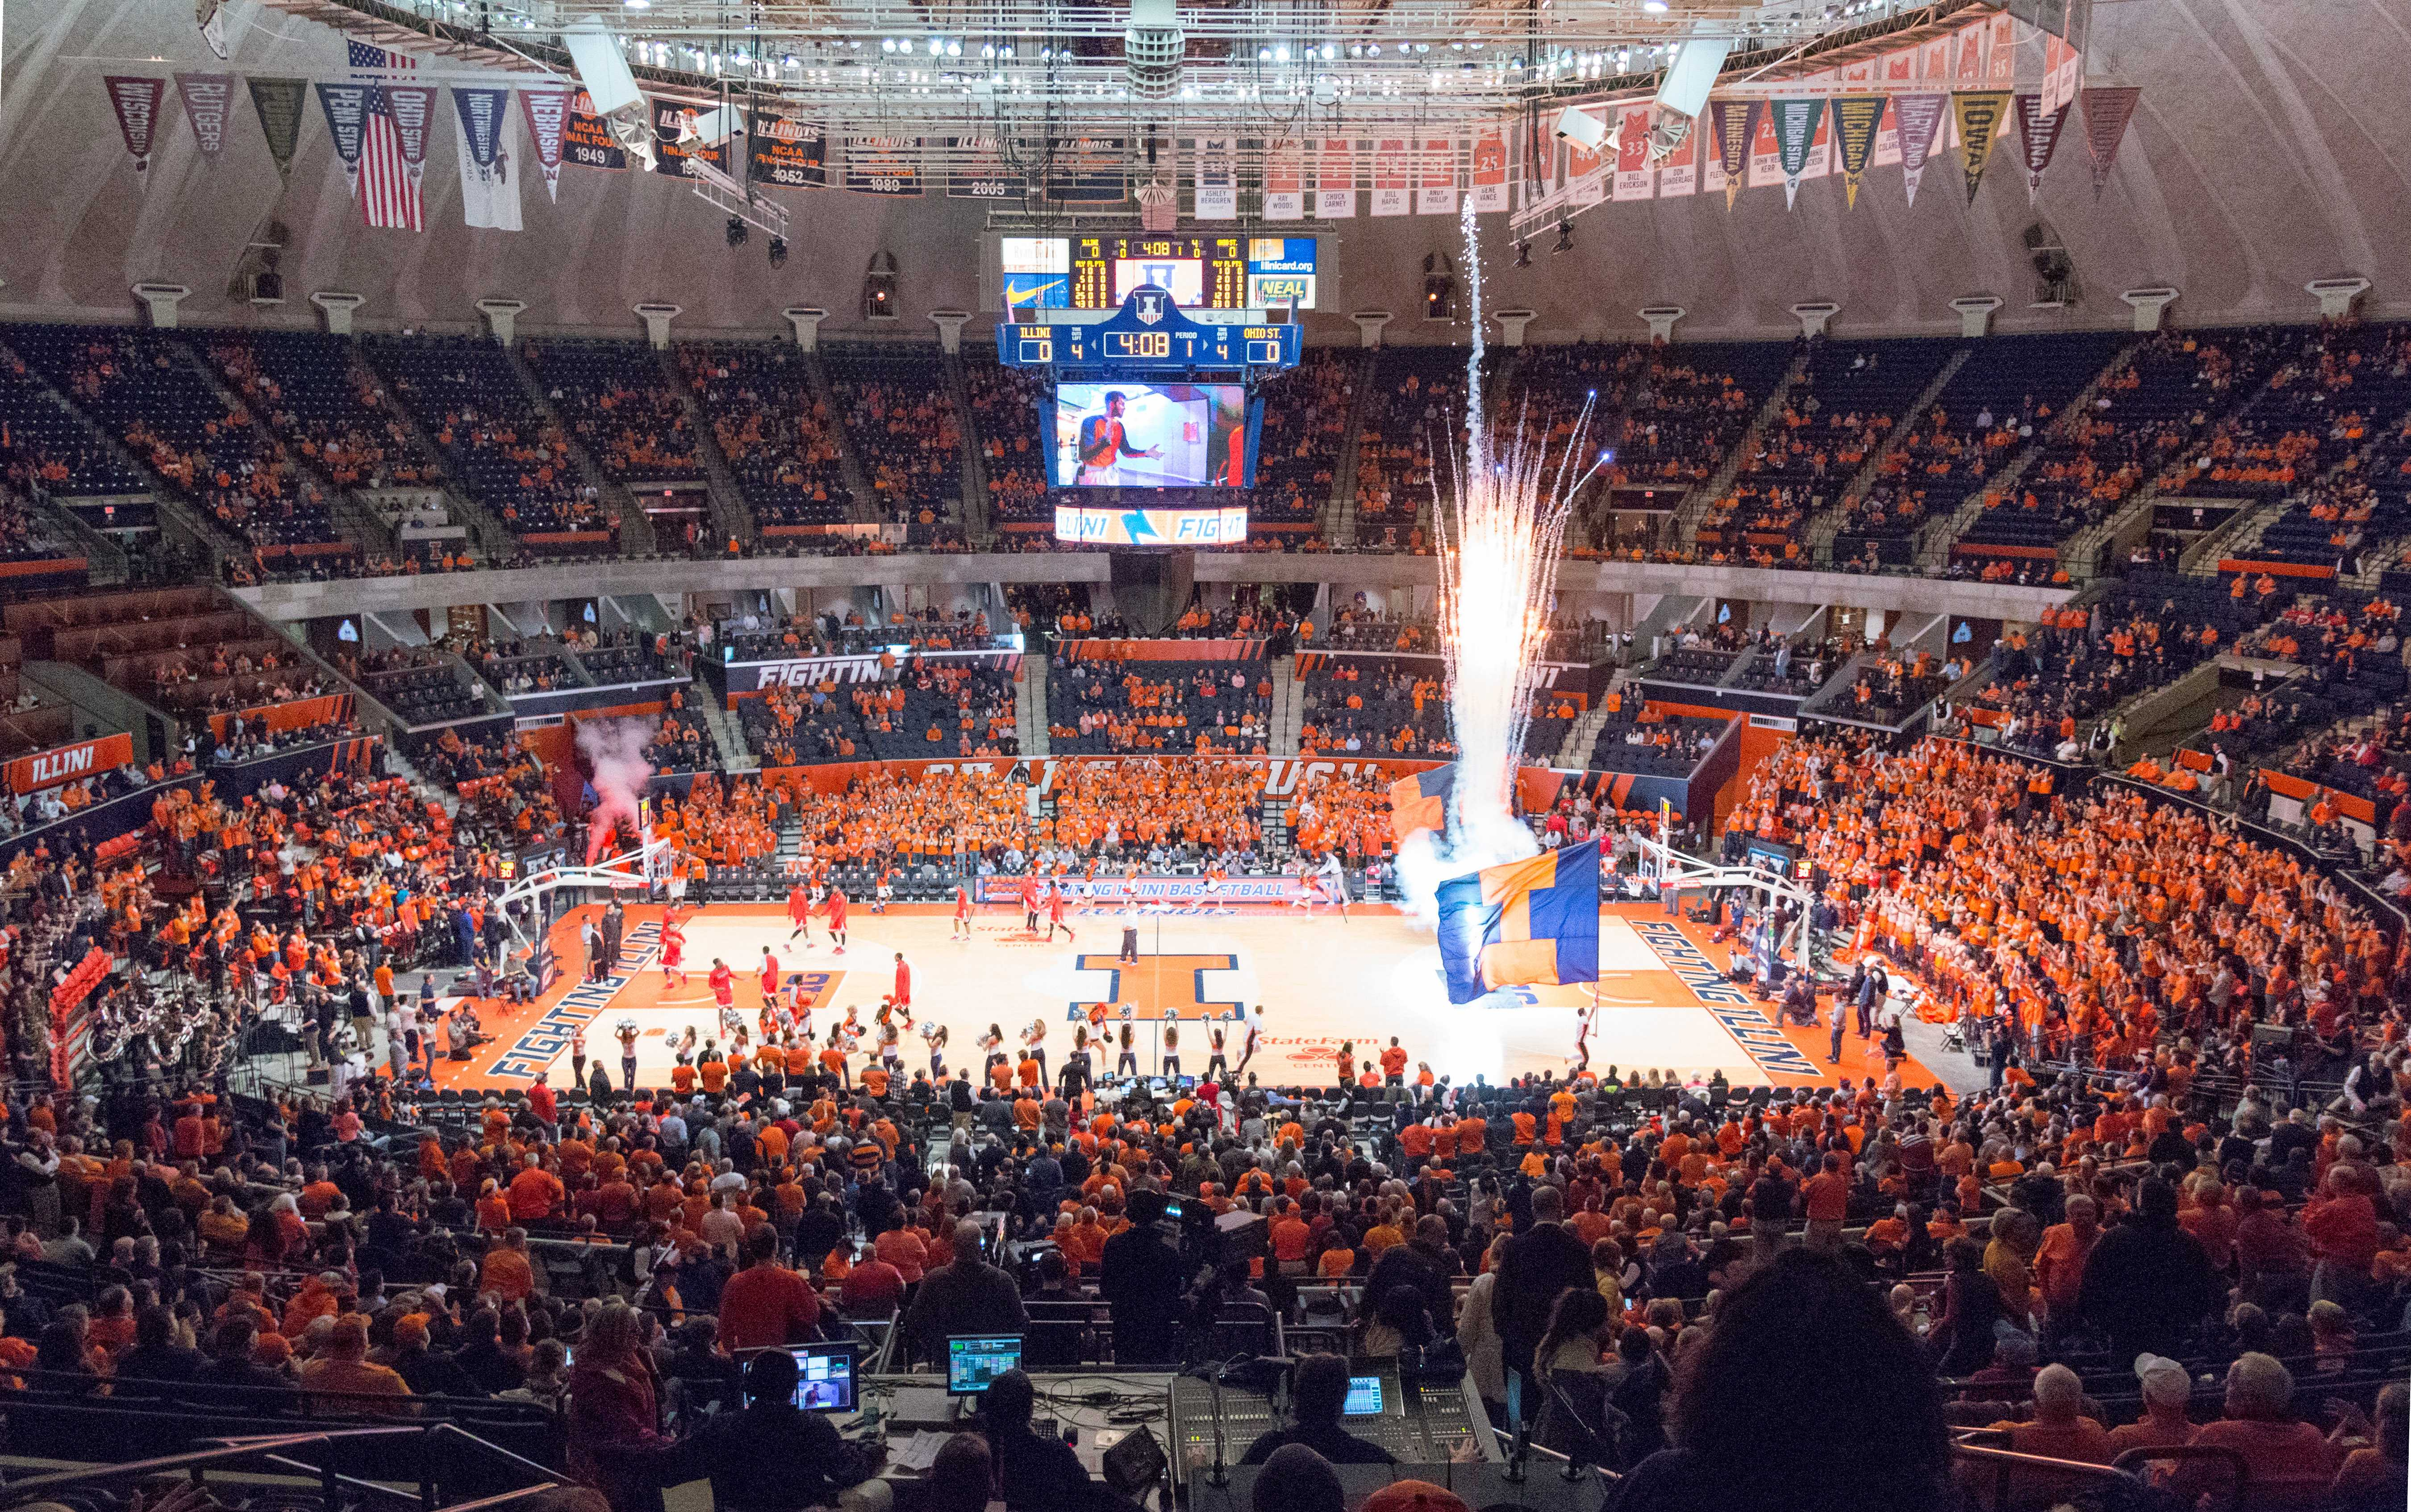 Fireworks shoot into the air inside State Farm Center just before the Illinois men's basketball team takes the court to face Ohio State on Thursday, Jan. 28.